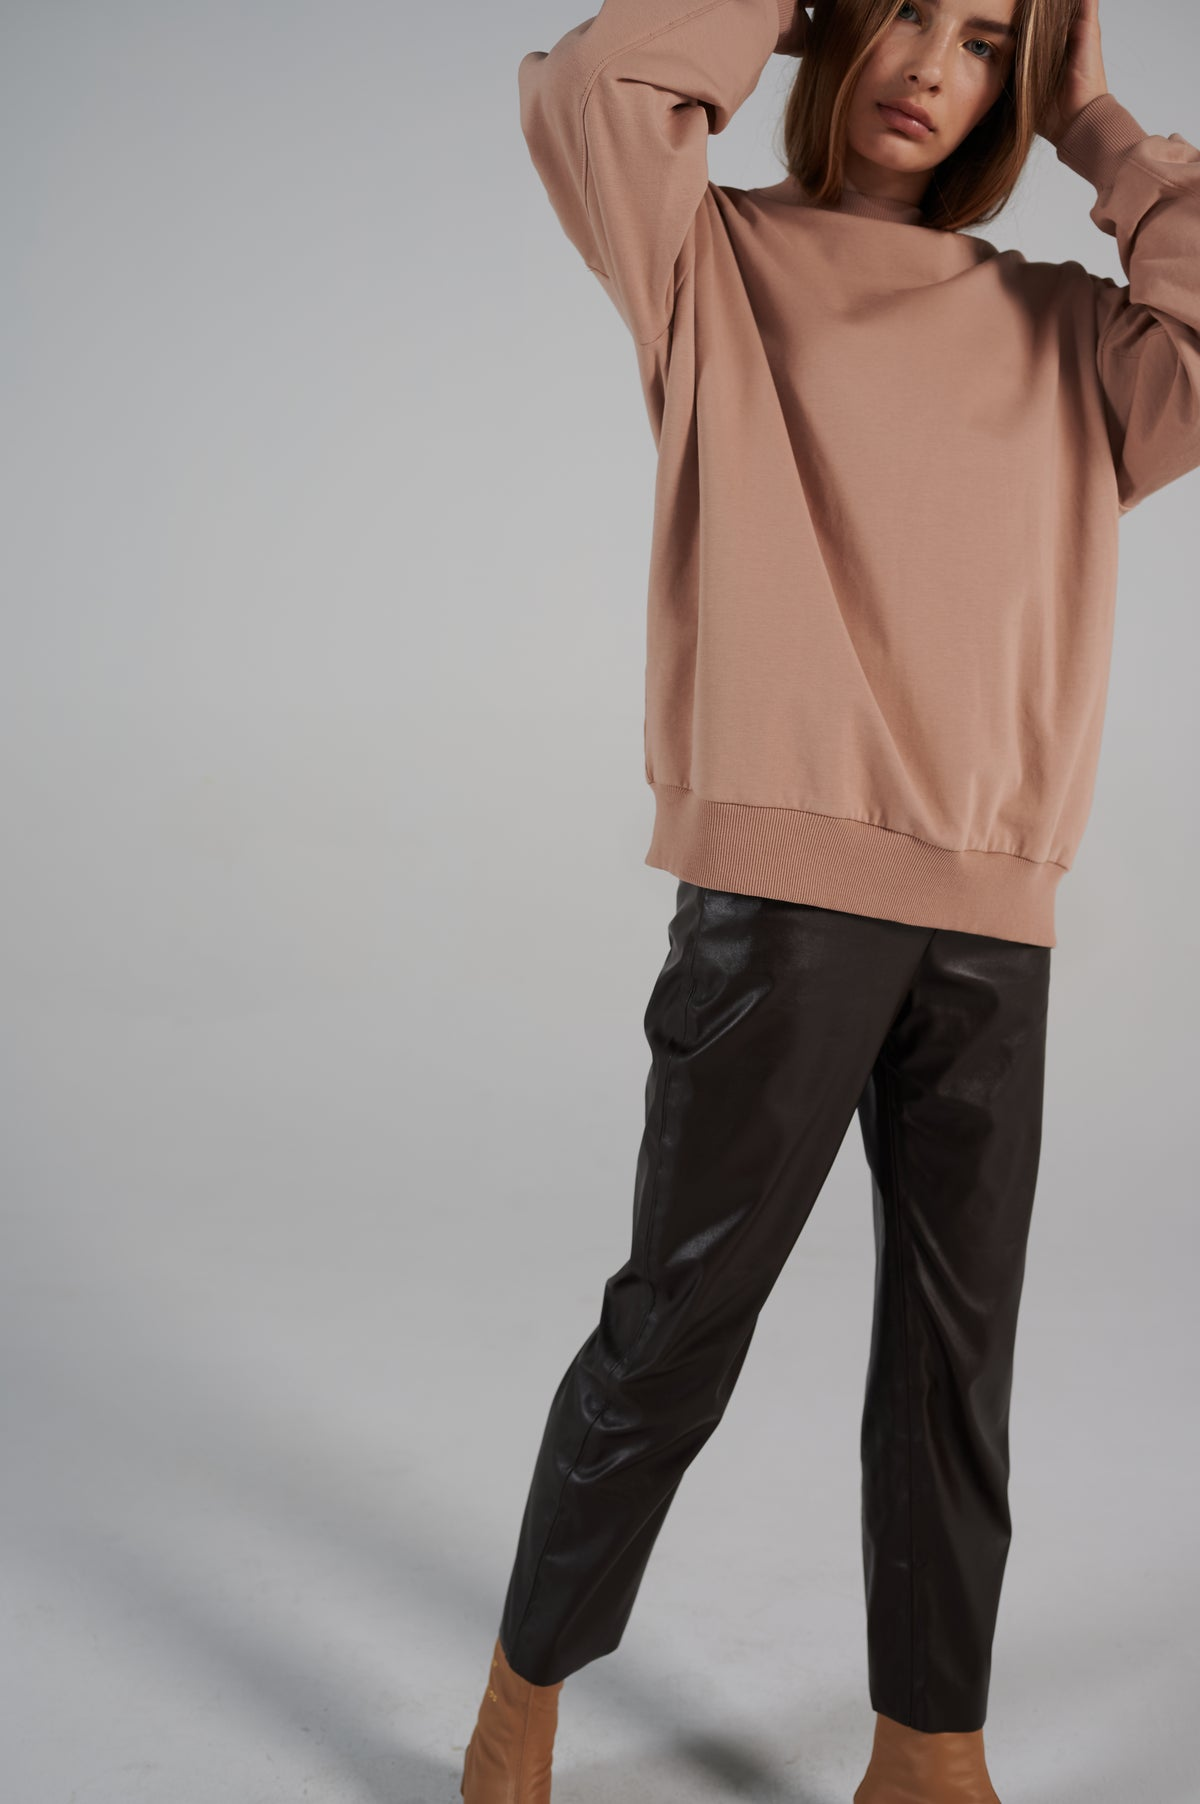 forest-brown-eco-leather-pants-le-slap-details-lookbook.jpg